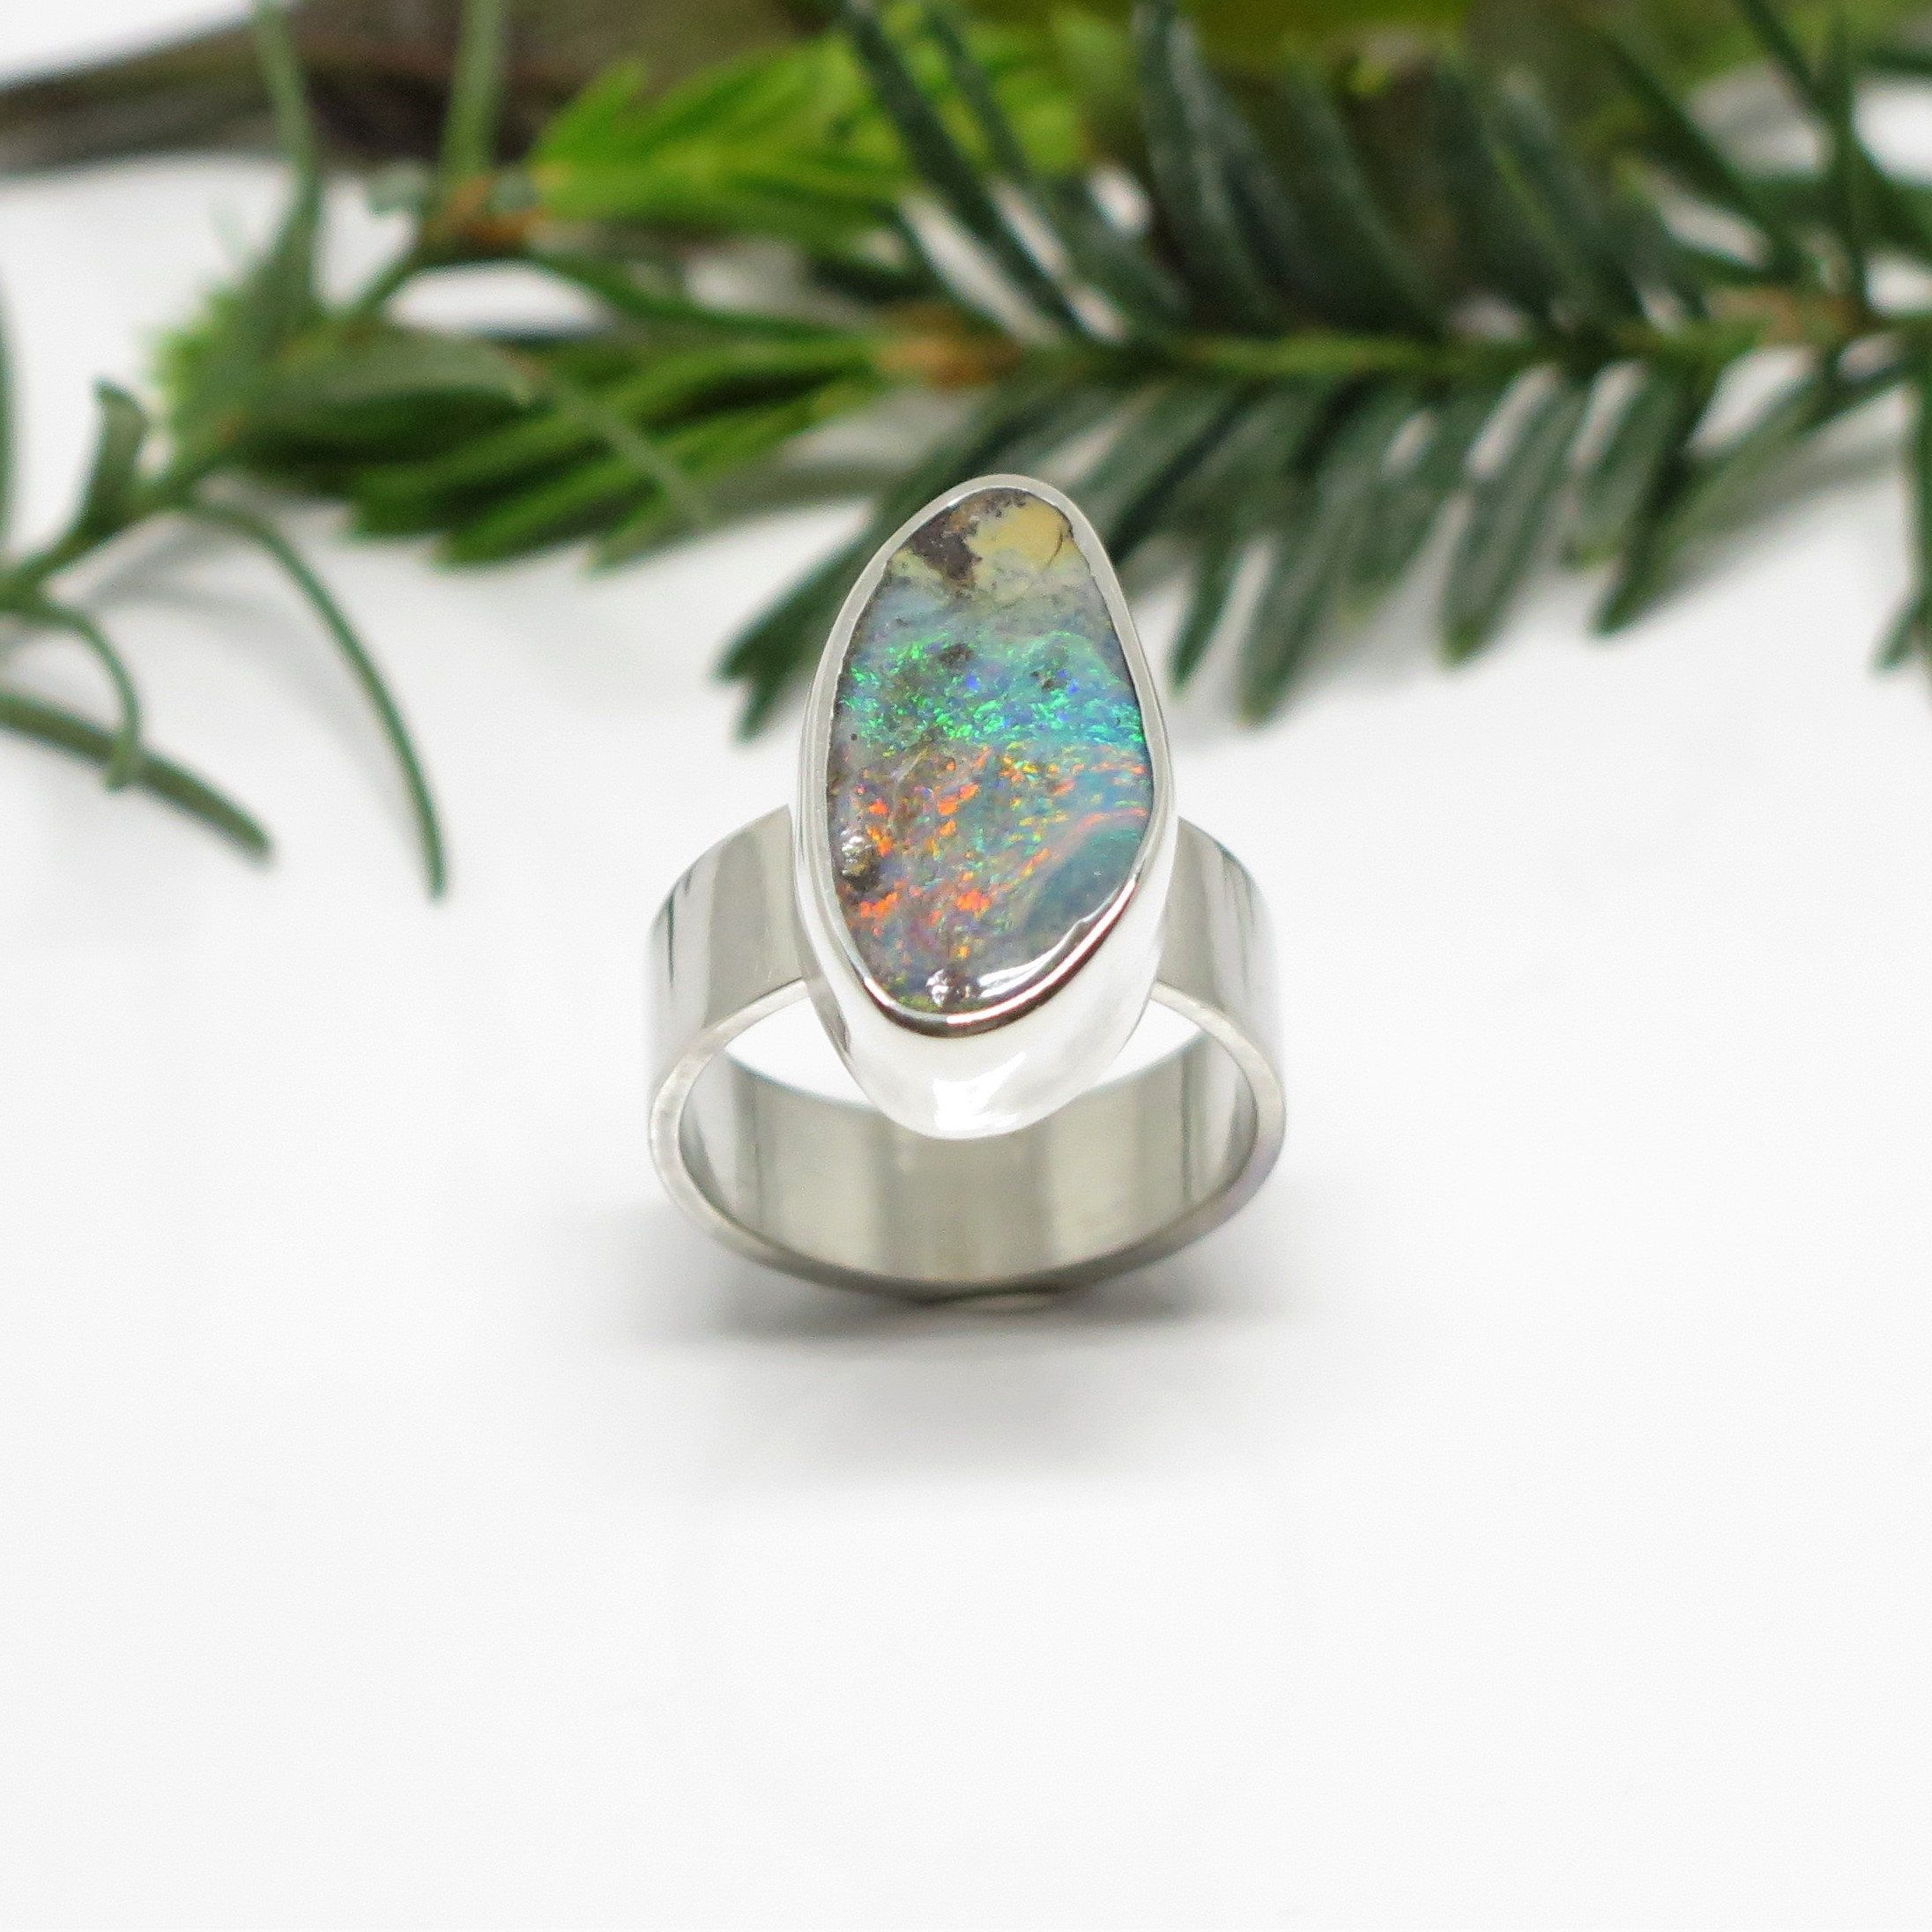 Sterling Silver Australian Boulder Opal Ring Wide Band Opal Ring Promise Large Opal Ring Colorful Australian Opal Ring Eco Friendly In 2020 Australian Boulder Opal Ring Boulder Opal Ring Australian Opal Ring